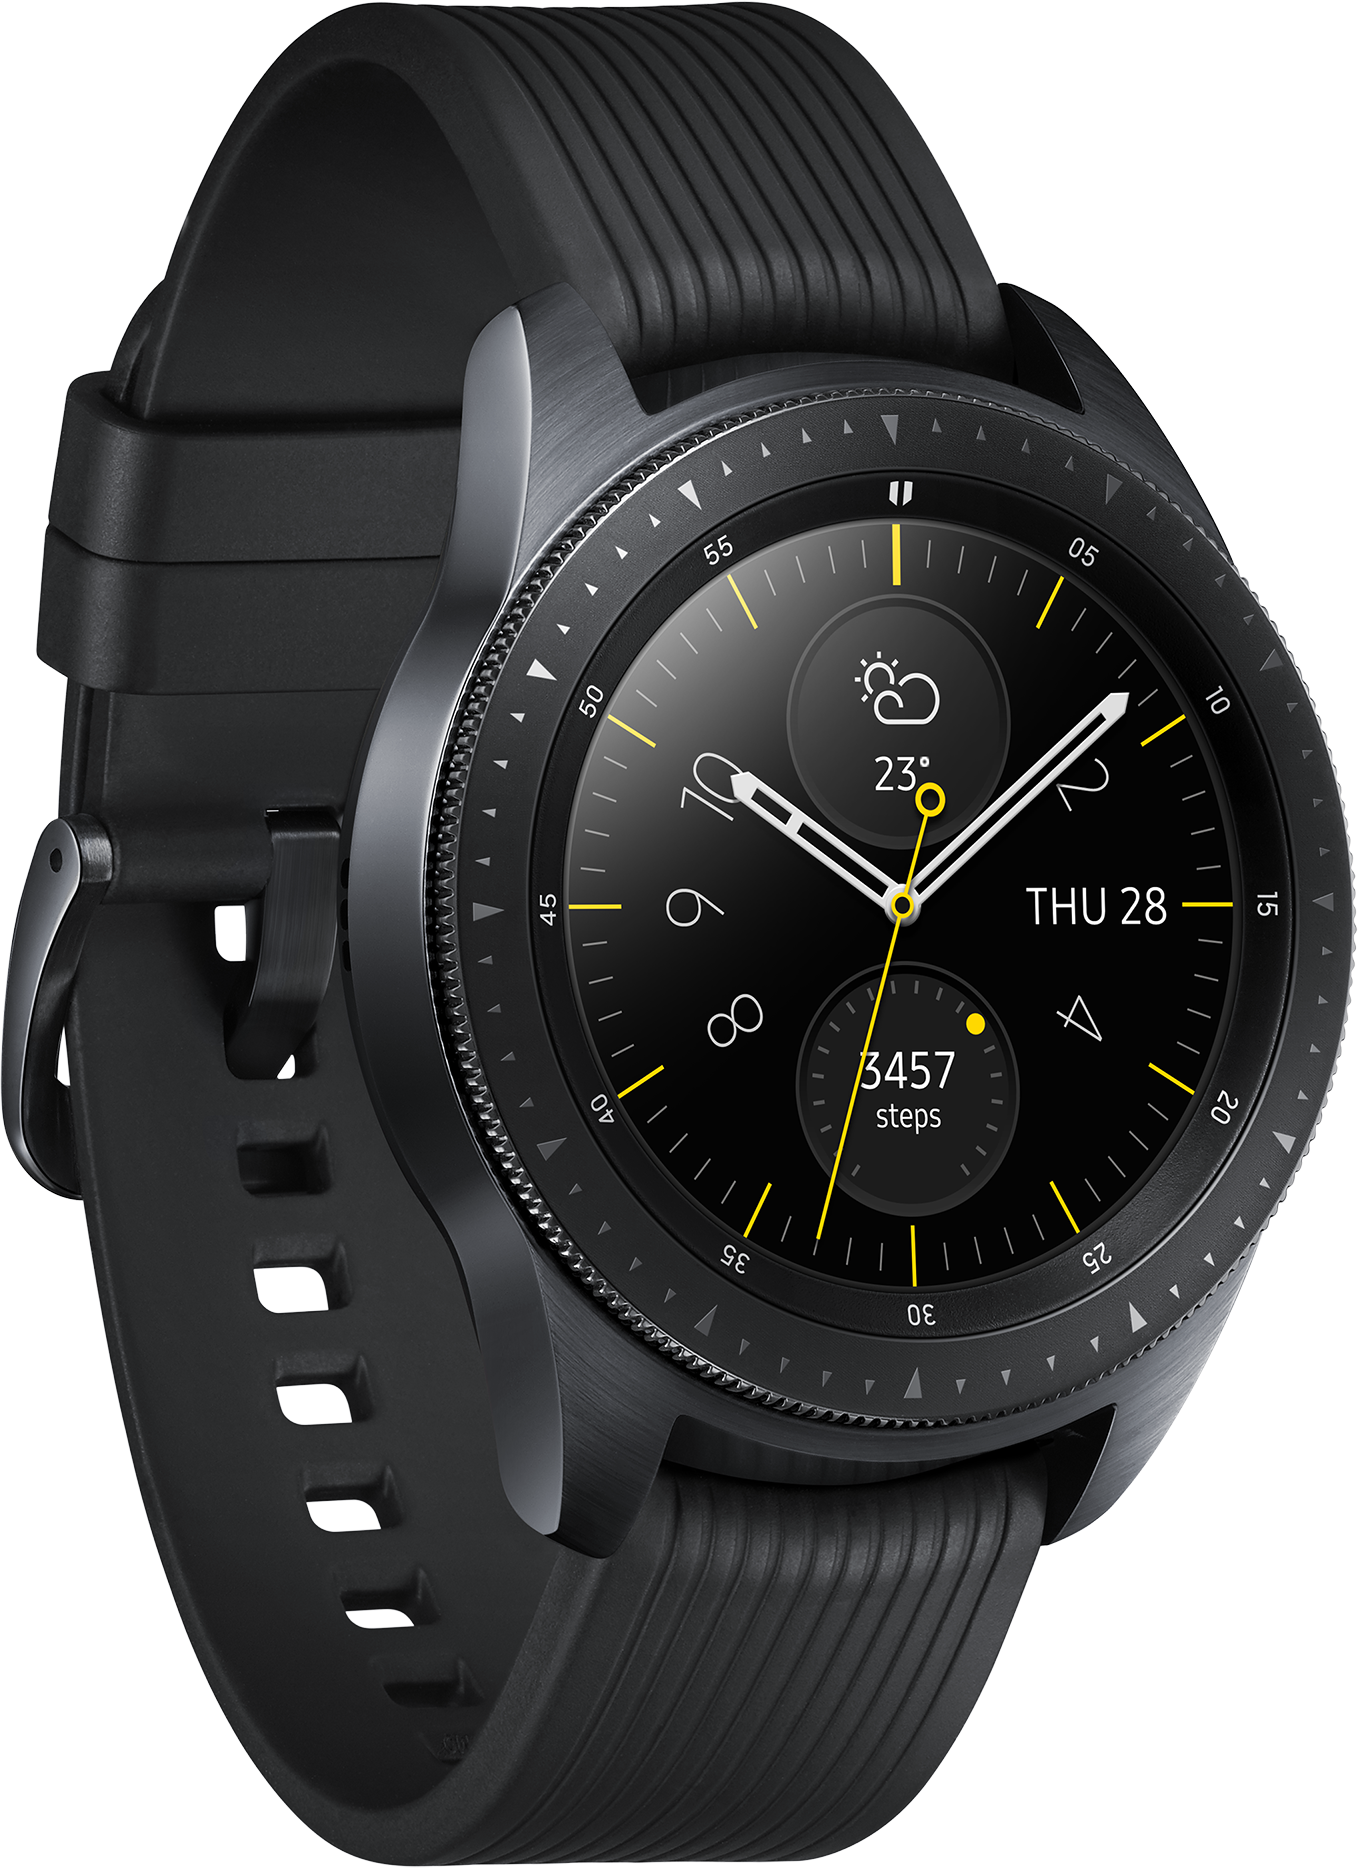 Montre connectée Galaxy Watch Active Samsung Noir Carbone